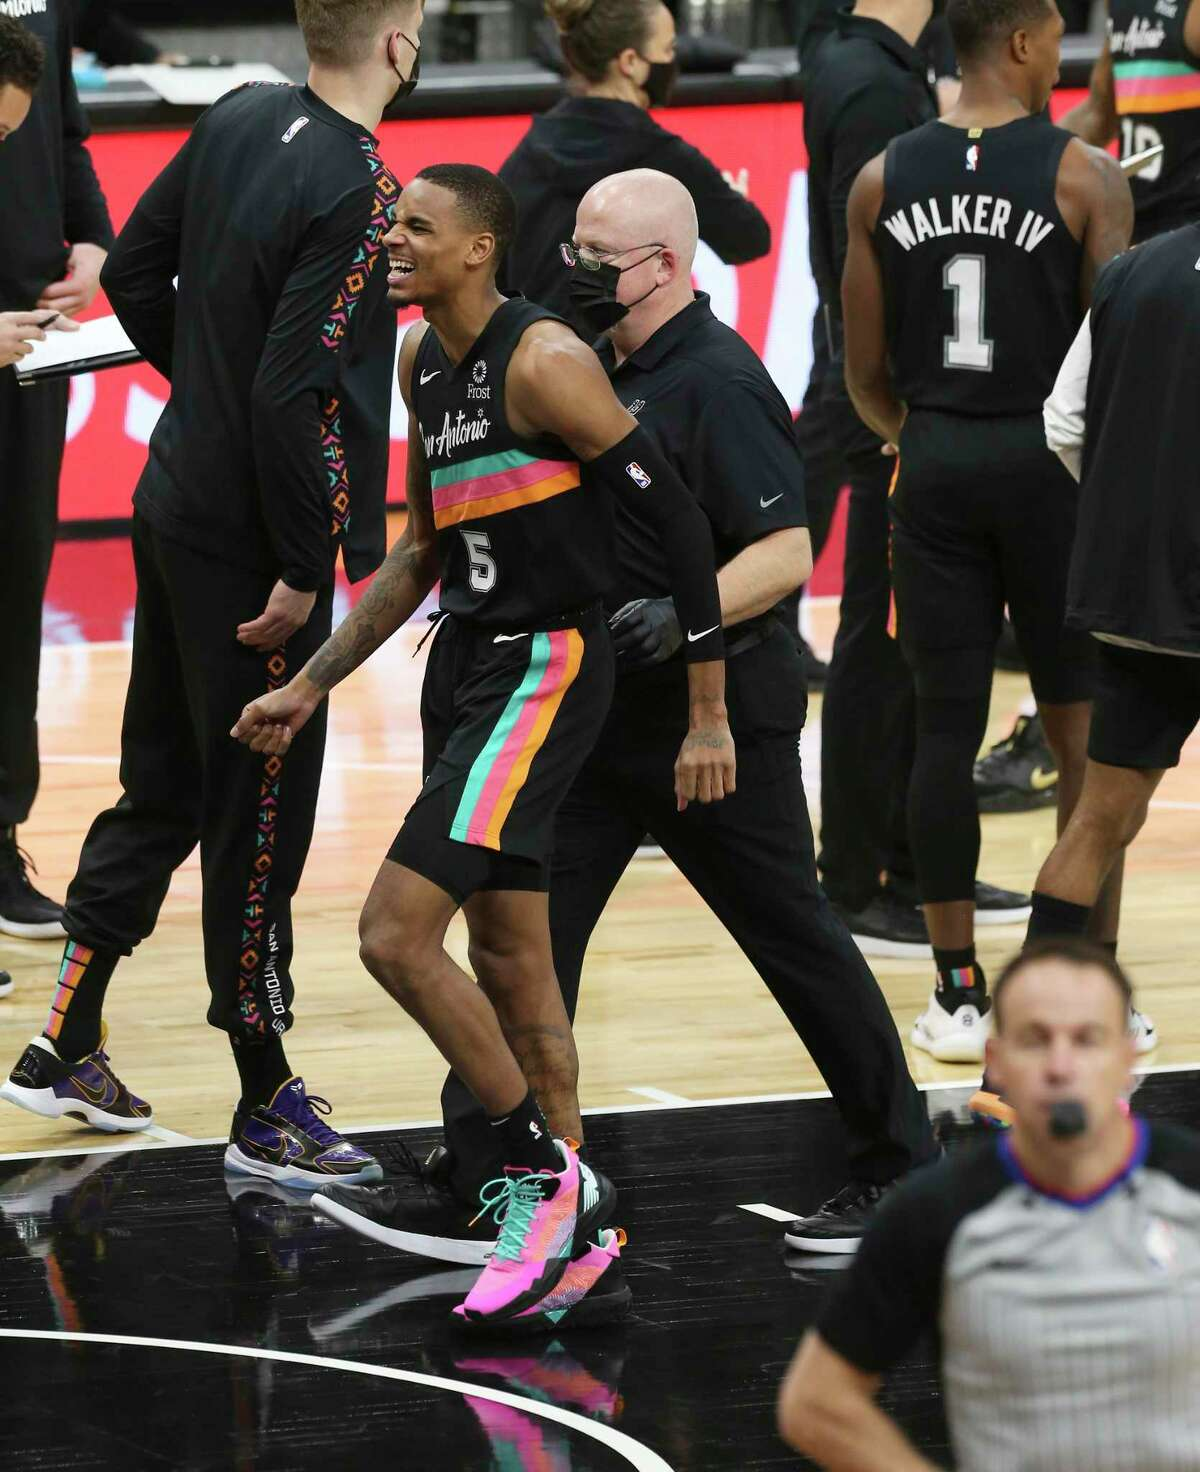 Spurs' Dejounte Murray (05) winces in pain as he heads to the locker room after getting his left foot stepped on by Dallas Mavericks' Kristaps Porzingis (06) at the AT&T Center on Friday, Jan. 22, 2021.